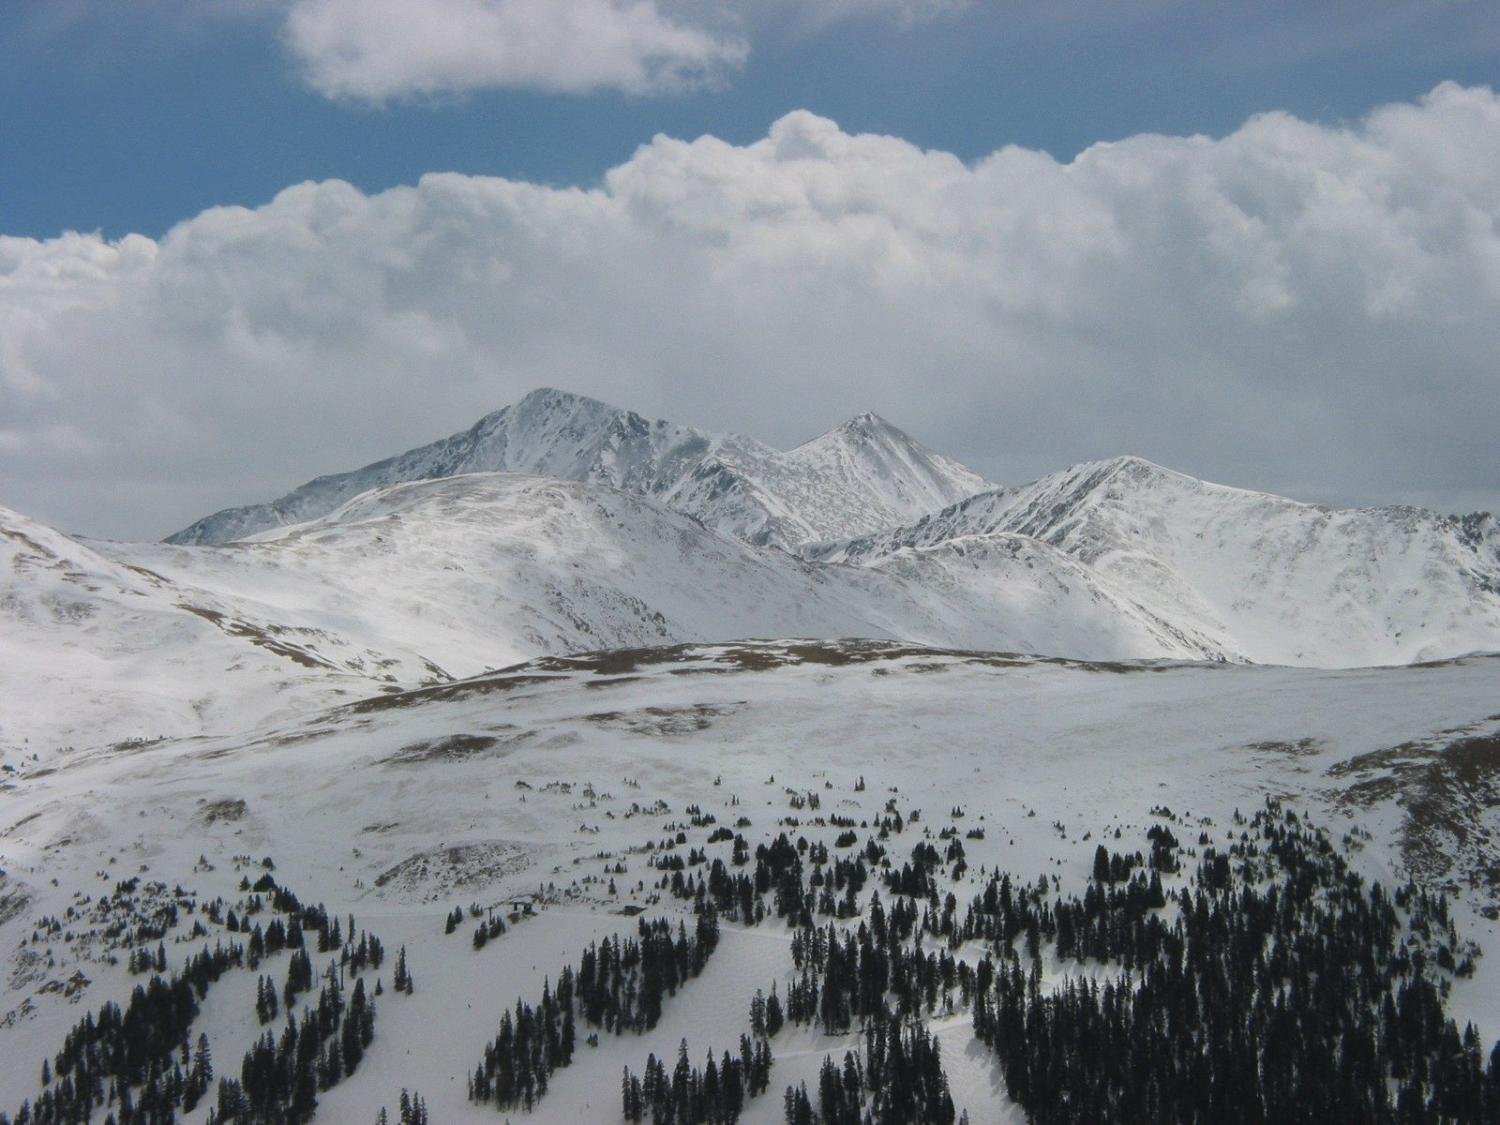 Grays and Torreys with Clouds on Income Tax Day, 2009.  Upper Lift One runs can be seen in the foreground.